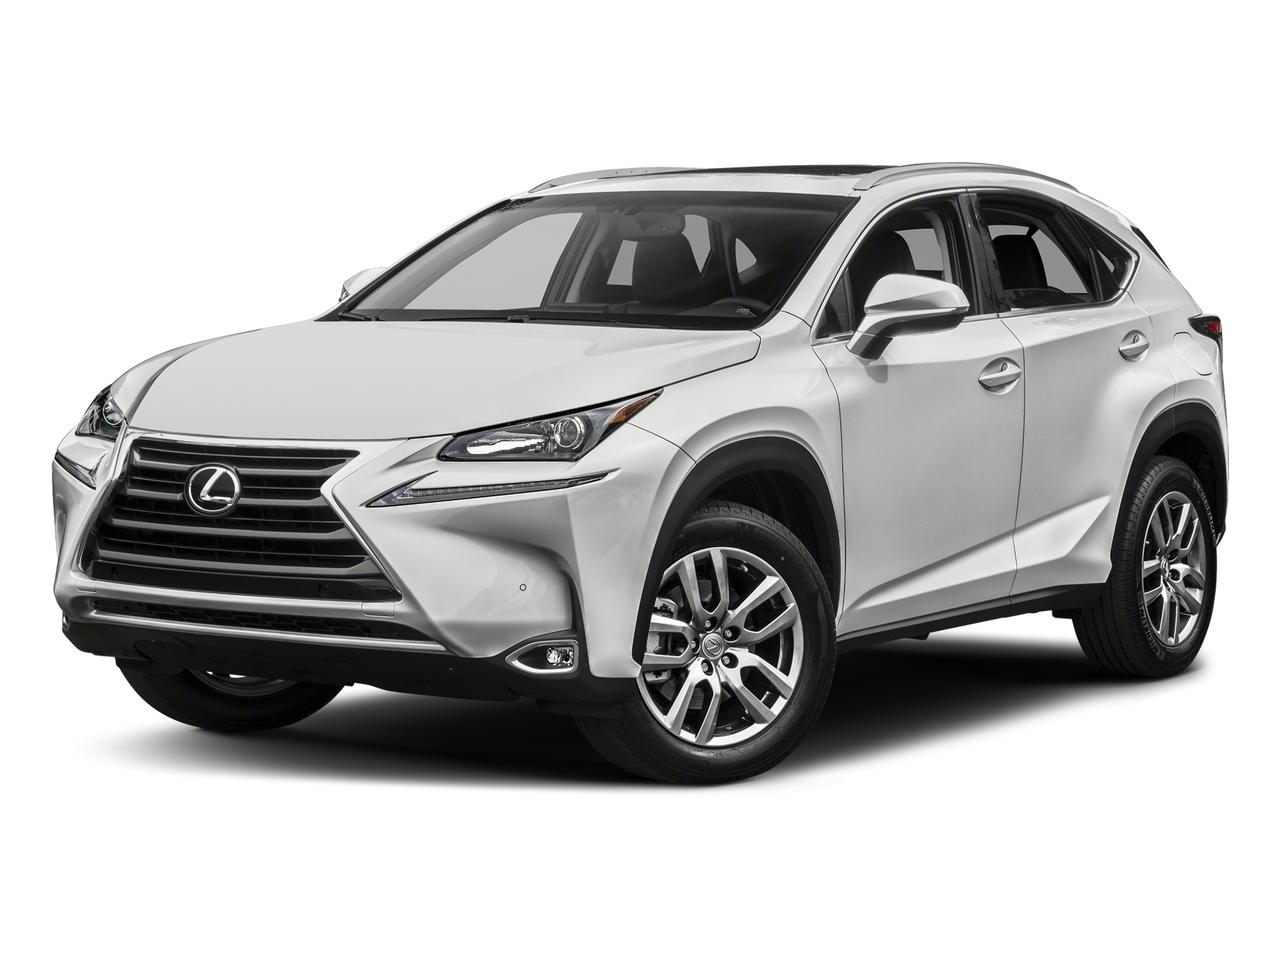 2017 Lexus NX Turbo Vehicle Photo in San Antonio, TX 78257